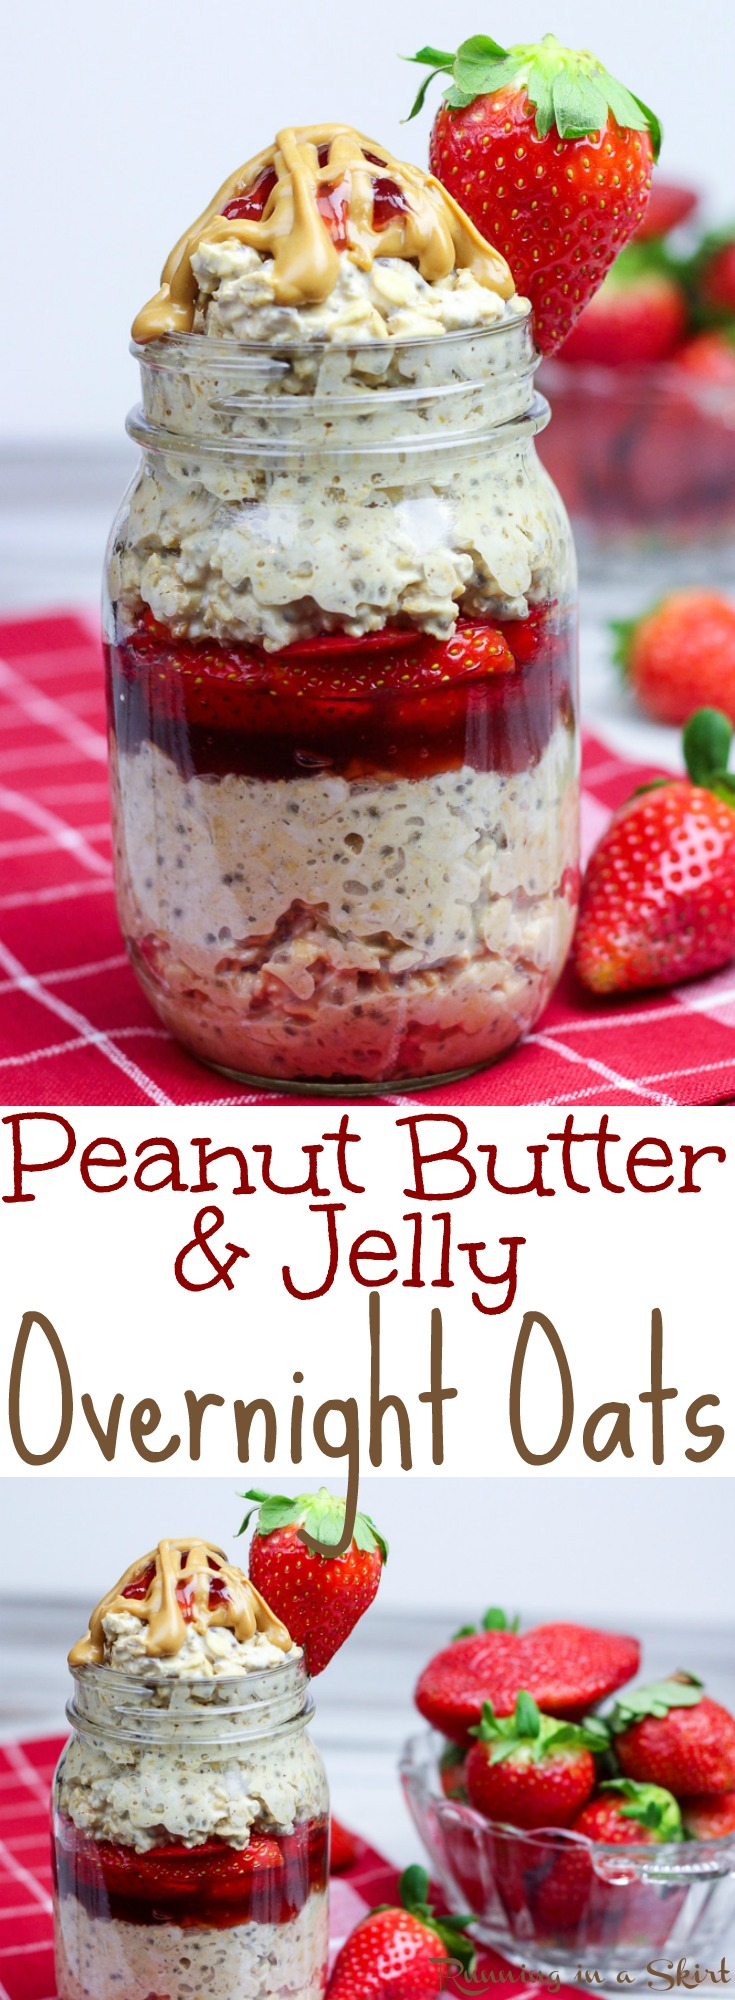 Healthy Peanut Butter and Jelly Overnight Oats recipe in a Jar- easy, only 6 ingredients! Filled with chia seeds, strawberry and oatmeal this is the perfect way to start your mornings for families. Without yogurt making it vegan, dairy free and adaptable to gluten free with the right oats! / Running in a Skirt via @juliewunder